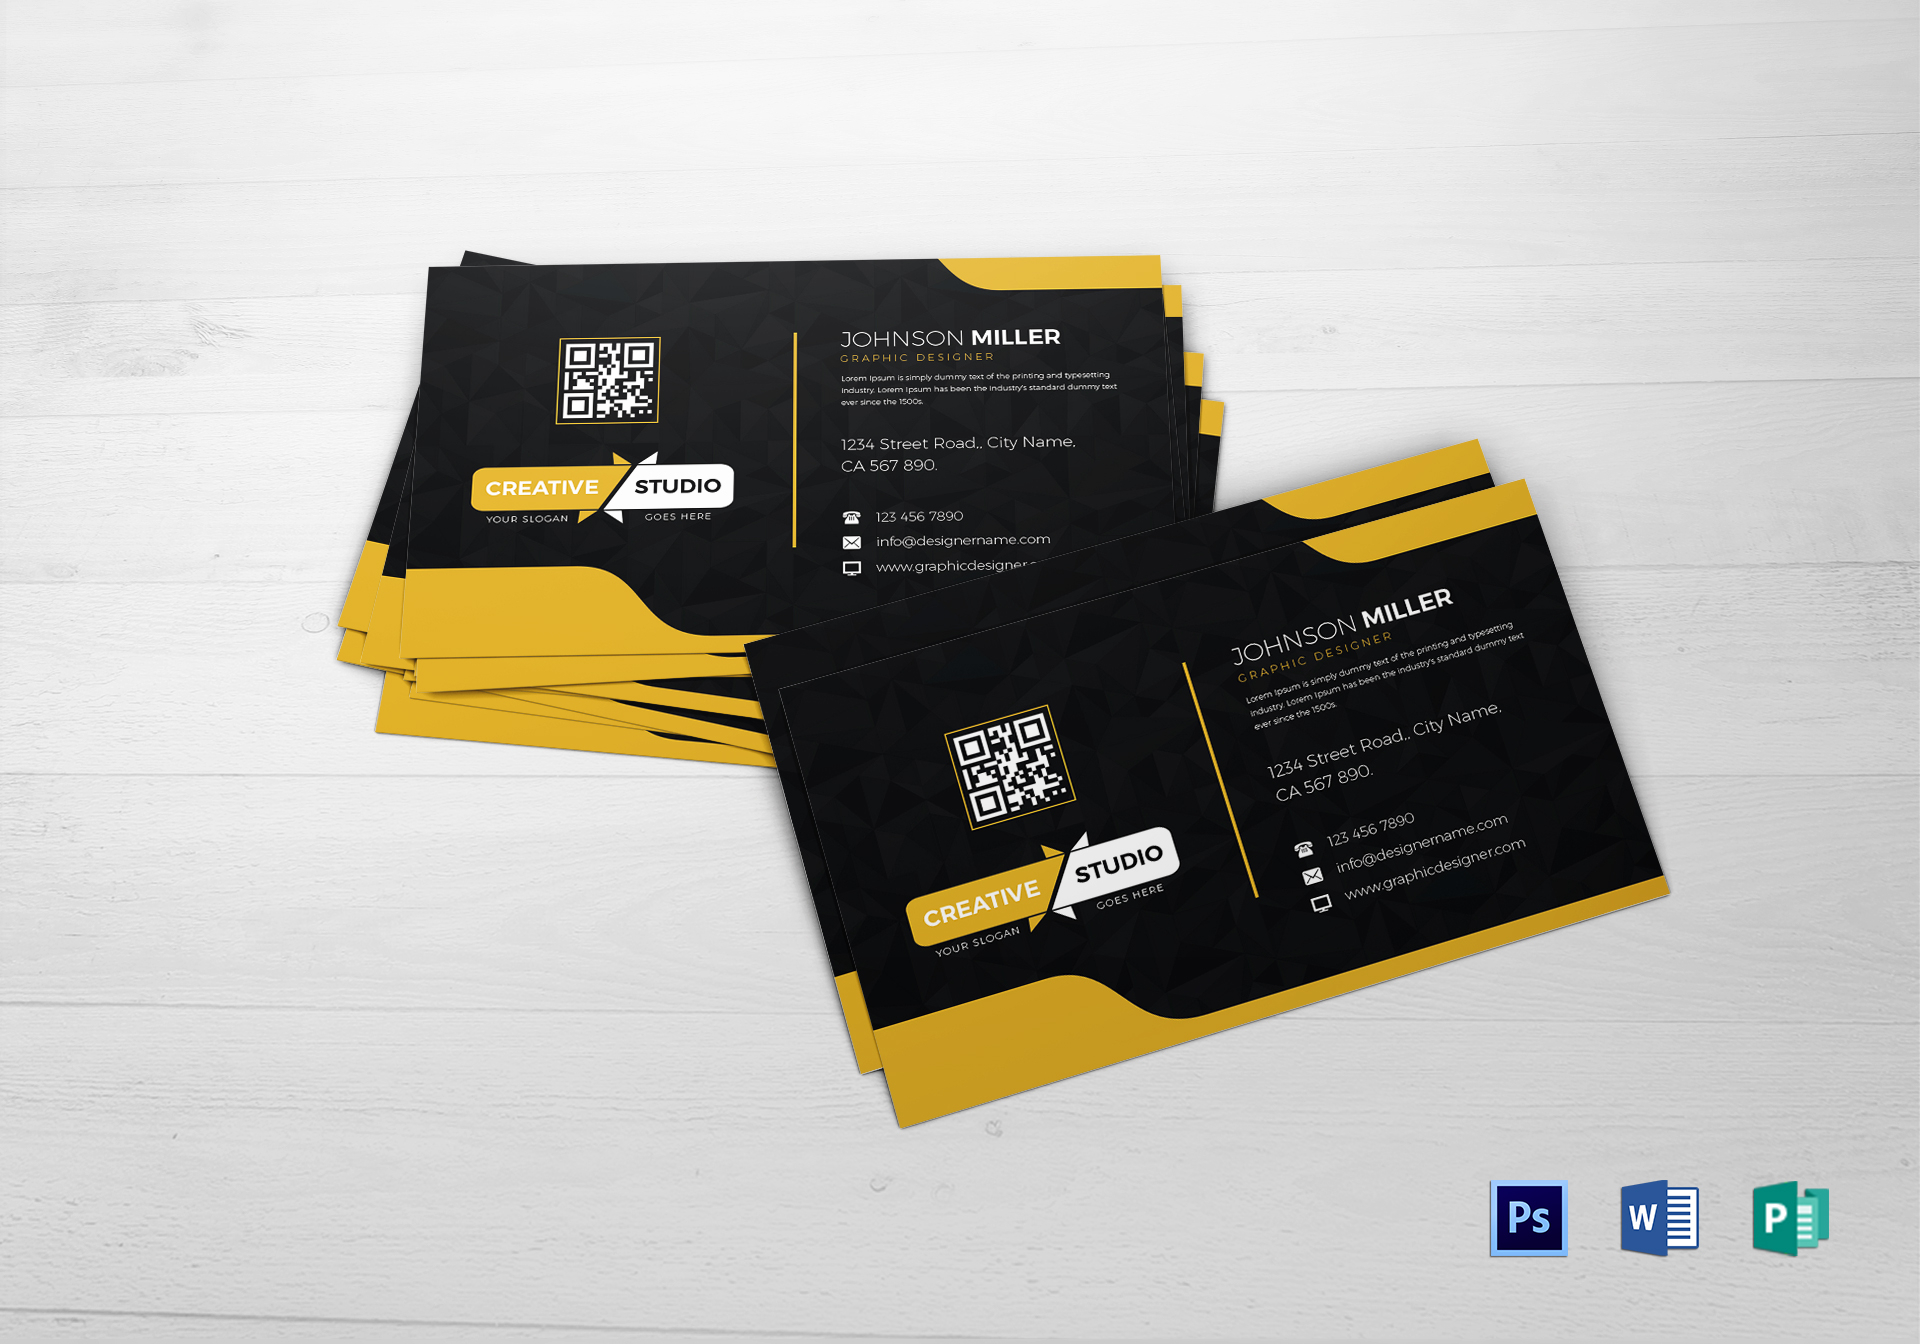 Graphic designer business card design template in psd word publisher graphic designer business card flashek